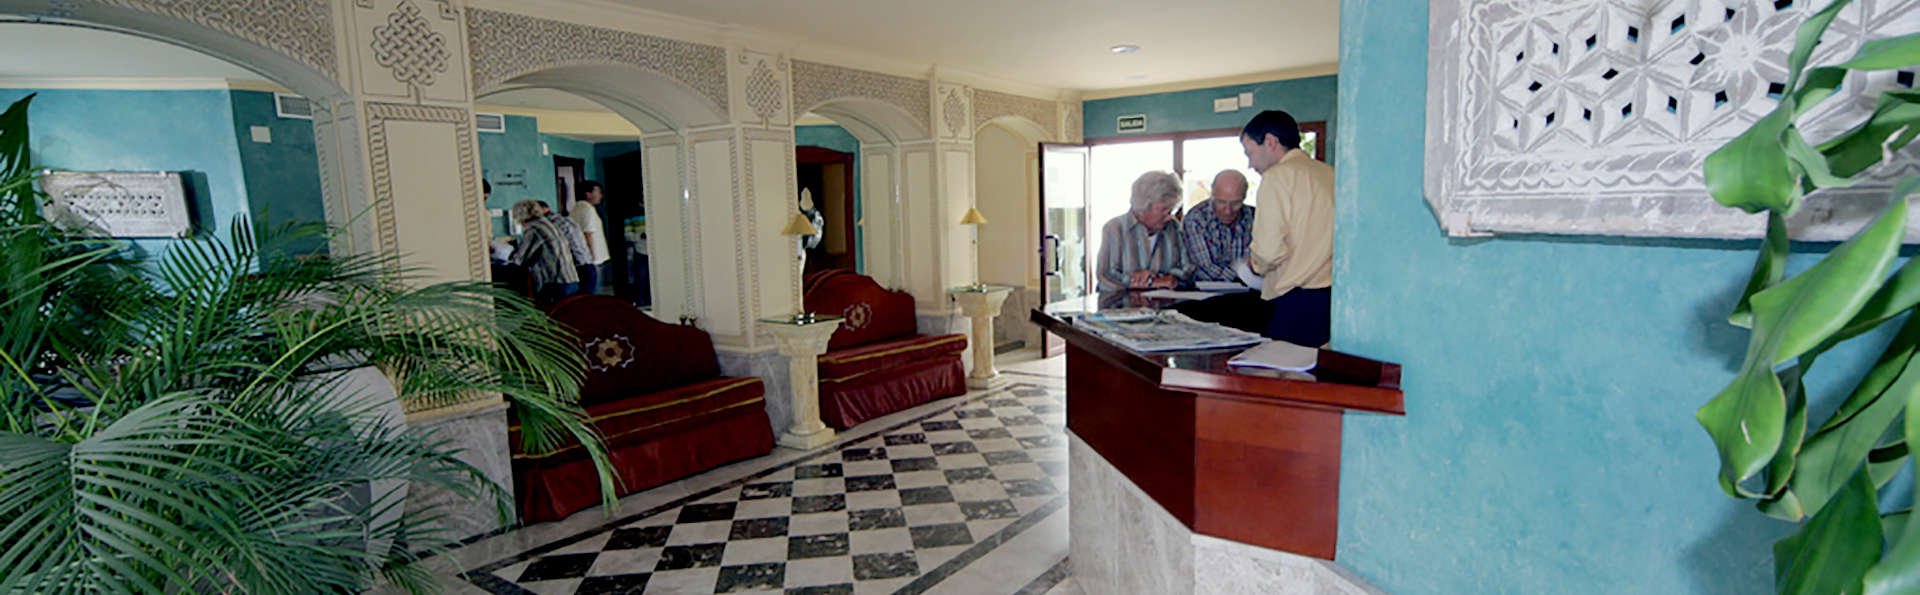 Hotel Toboso Apar-Turis - Edit_Reception.jpg